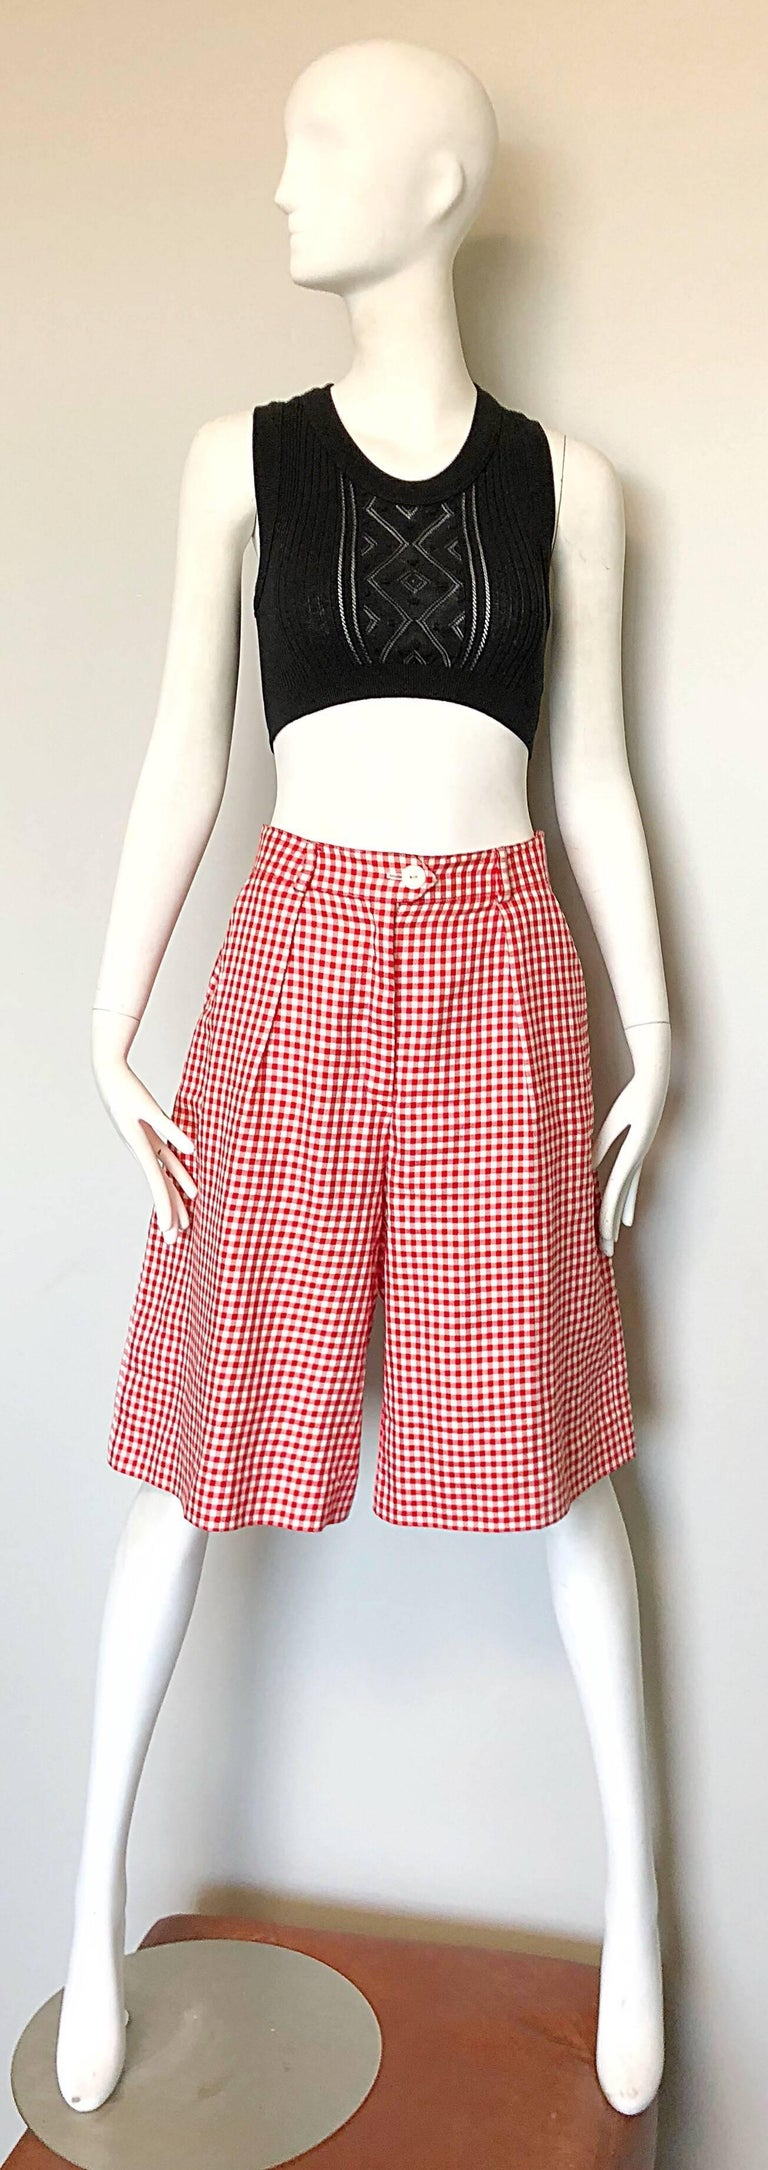 Vintage Escada Margaretha Ley Red White Nautical Gingham 1980s Culottes Shorts For Sale 3